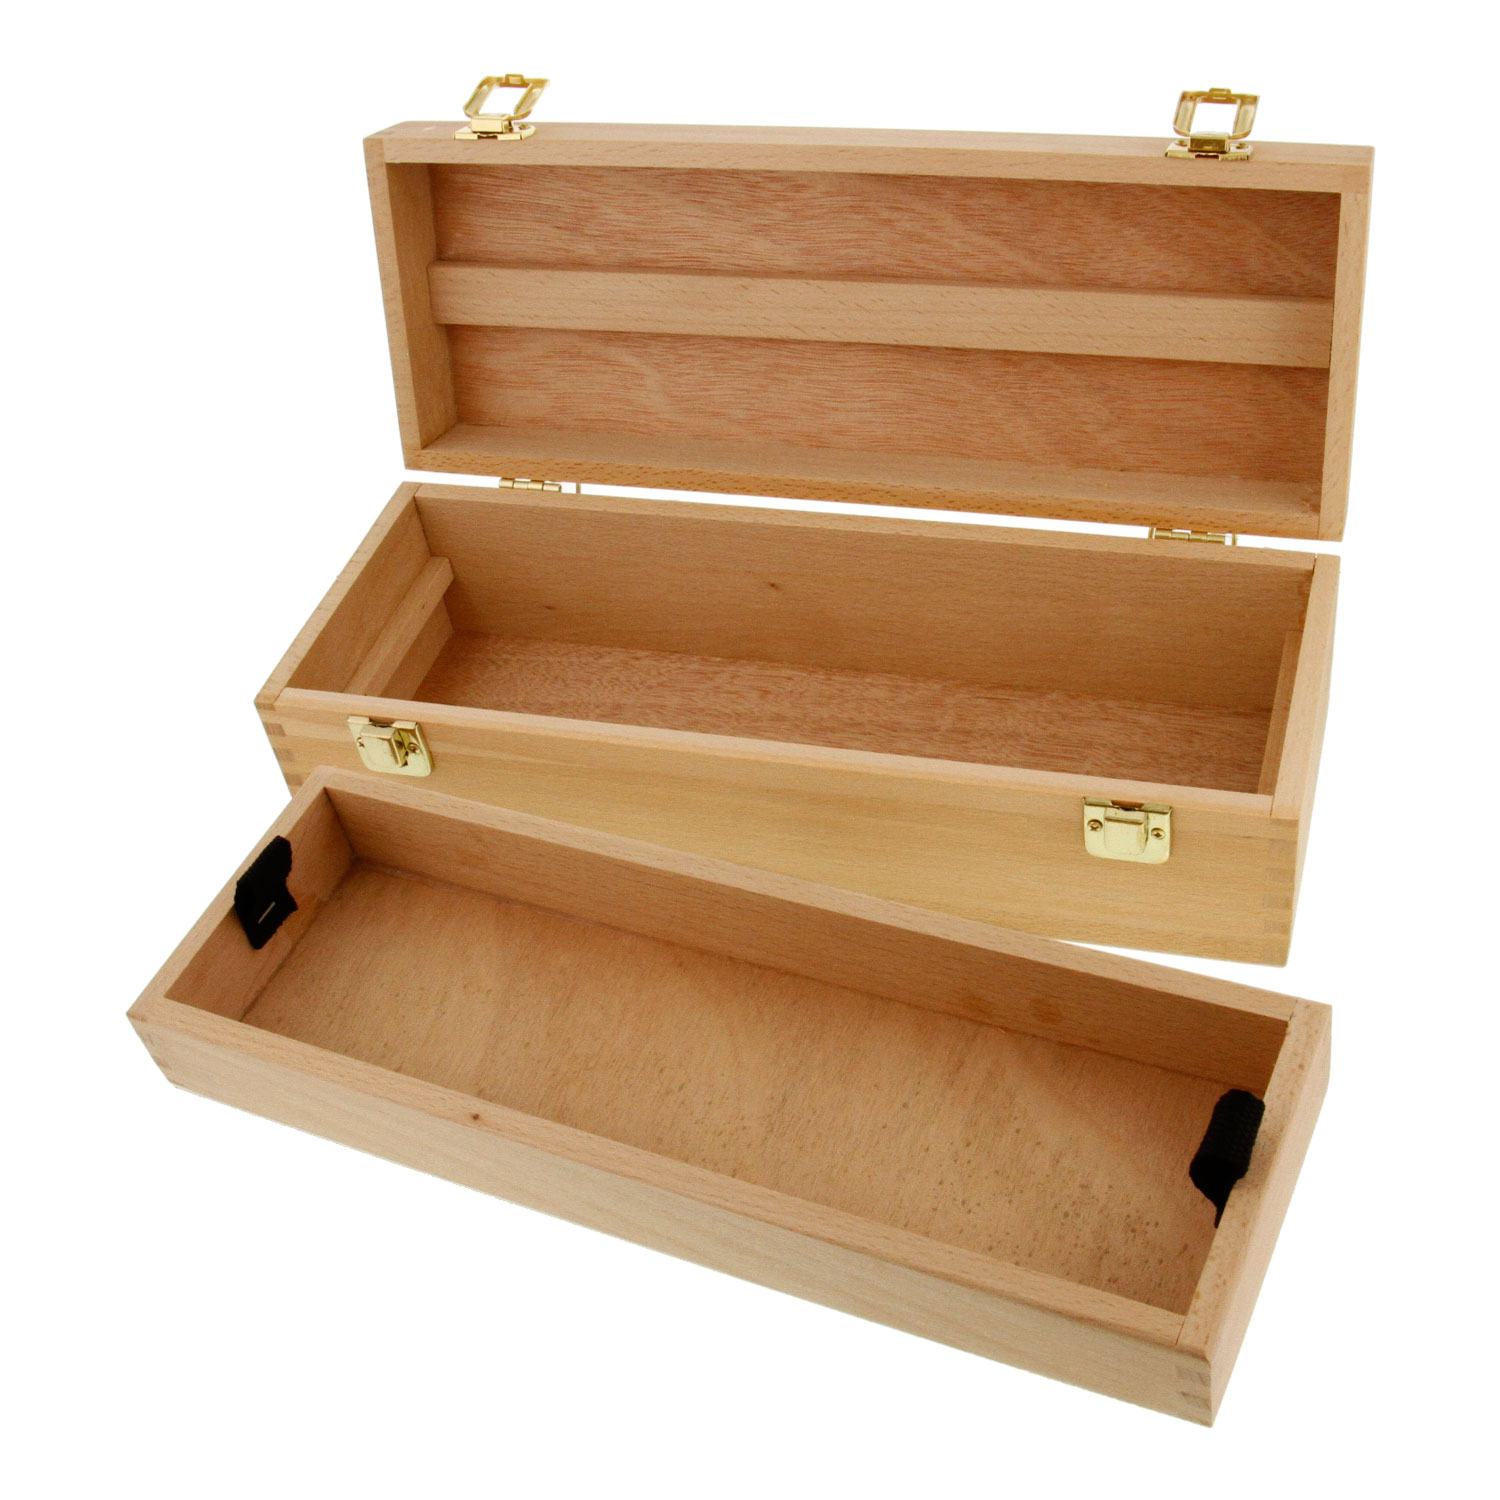 Very Impressive portraiture of  Artist Wood Pen Marker Storage Box w/ Drawer Medium Tool Box eBay with #130903 color and 1500x1500 pixels